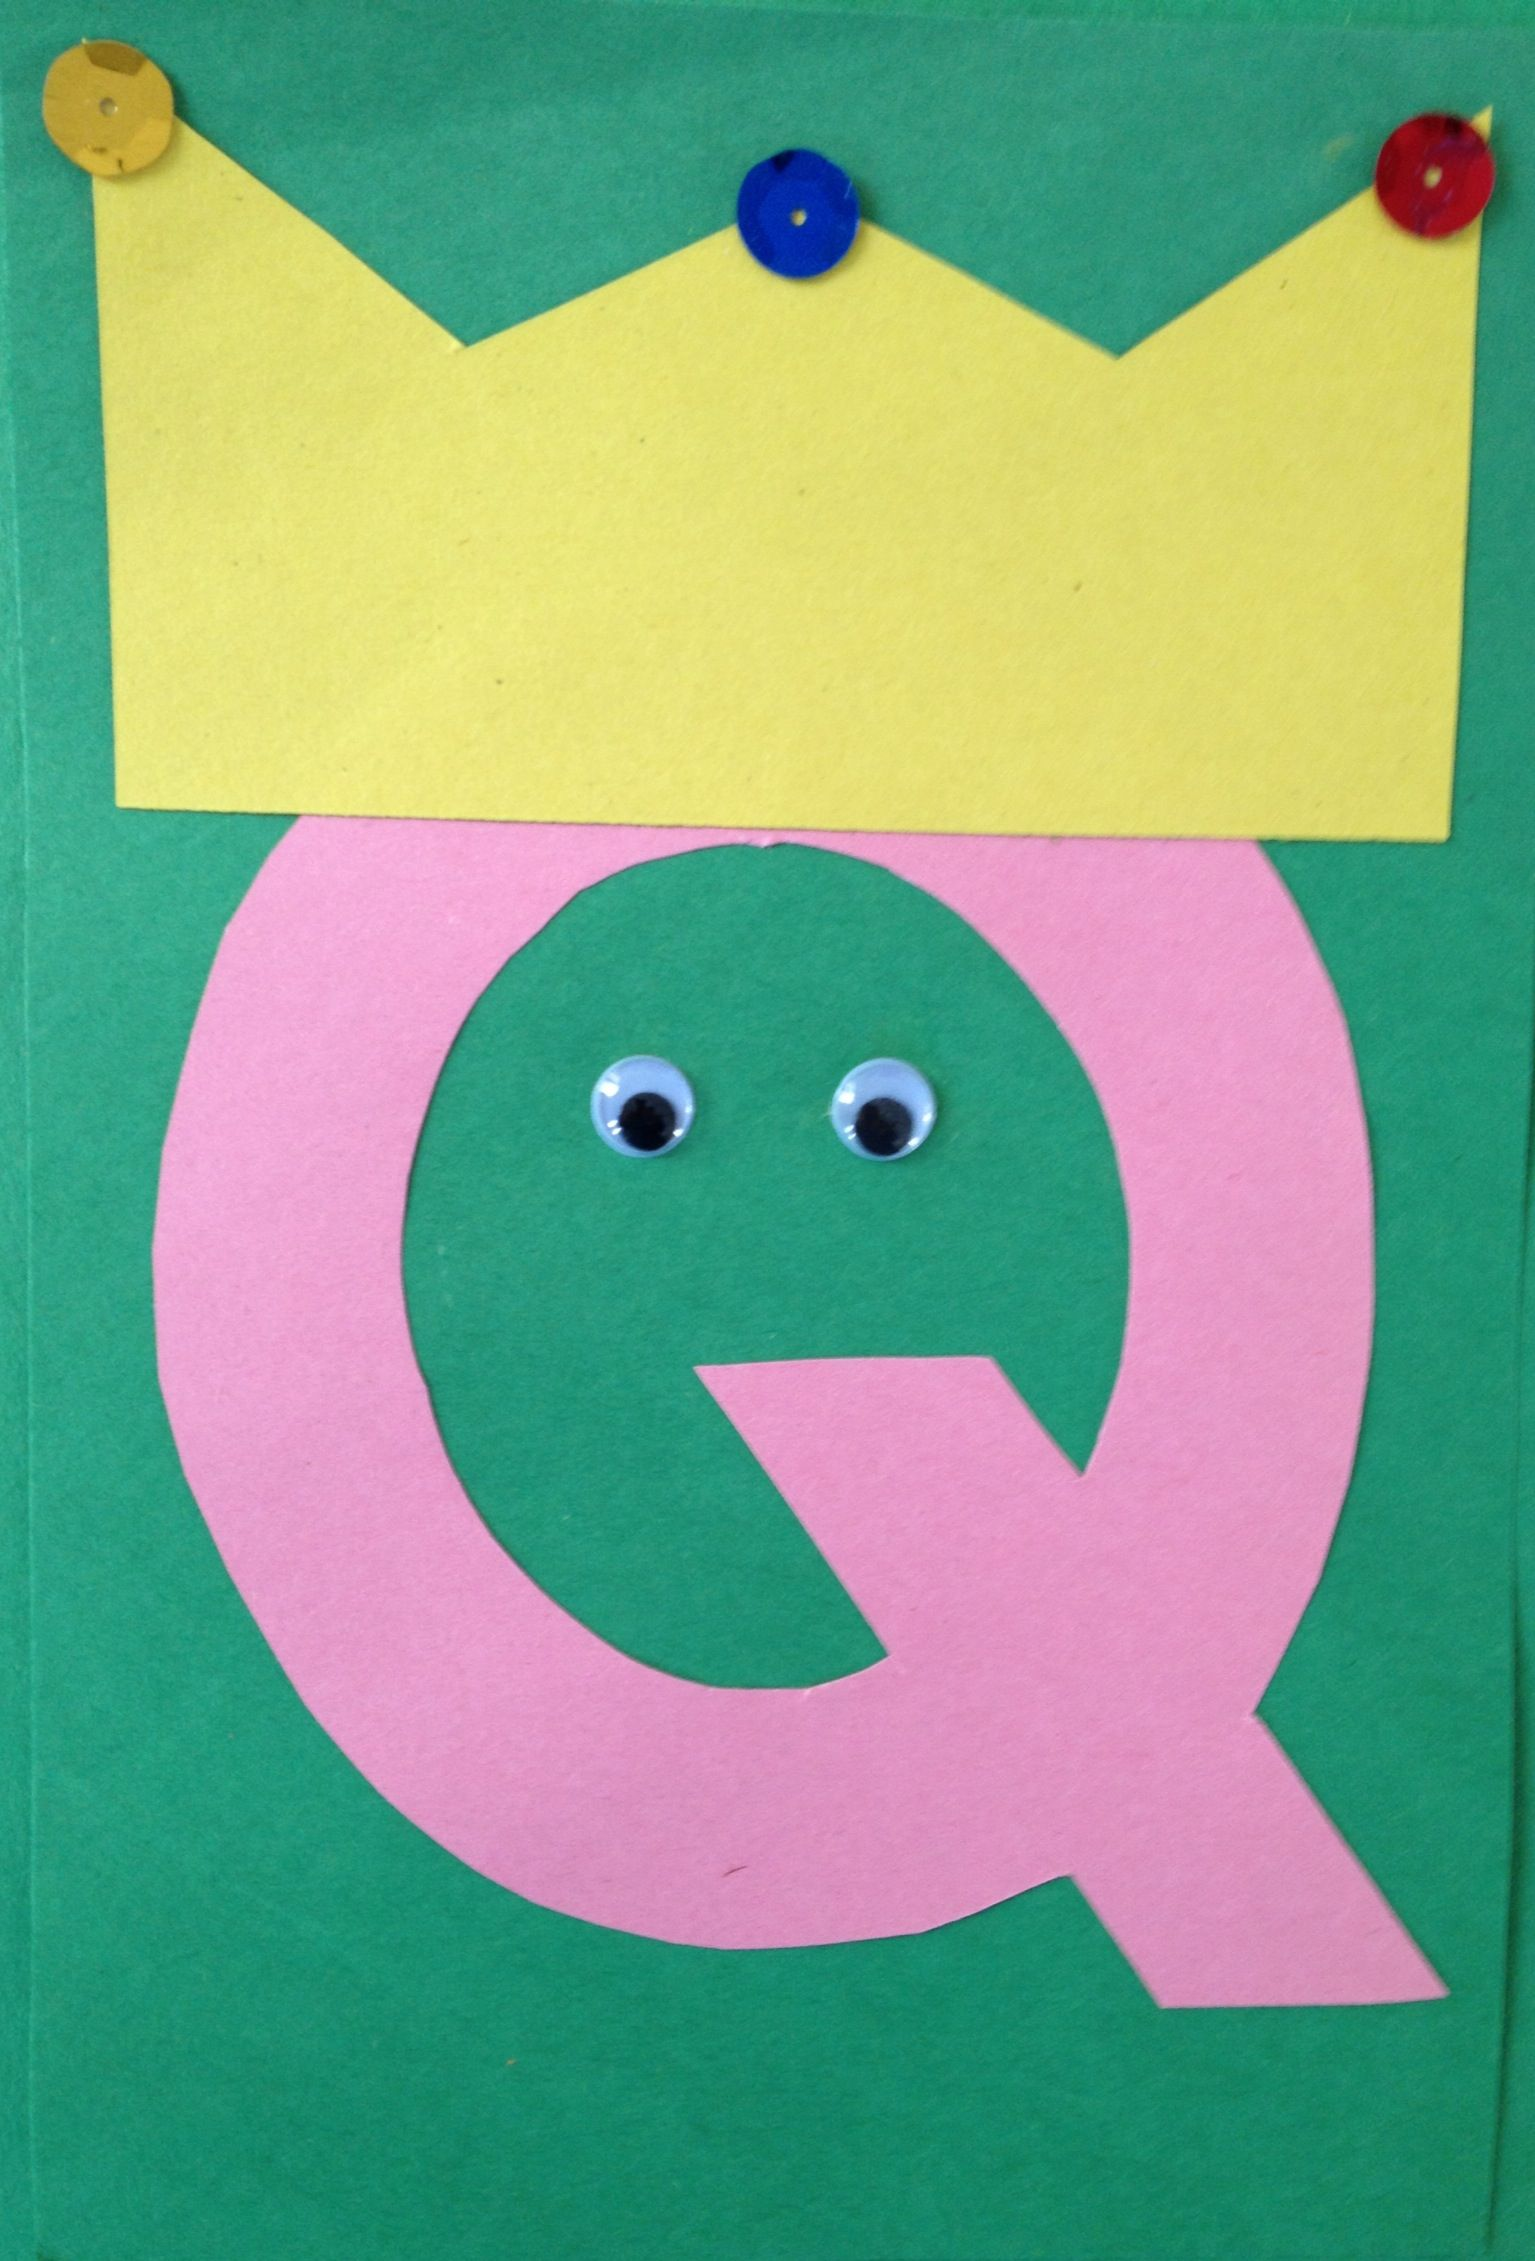 Letter s arts and crafts for preschoolers - Preschool Letter Q Craft